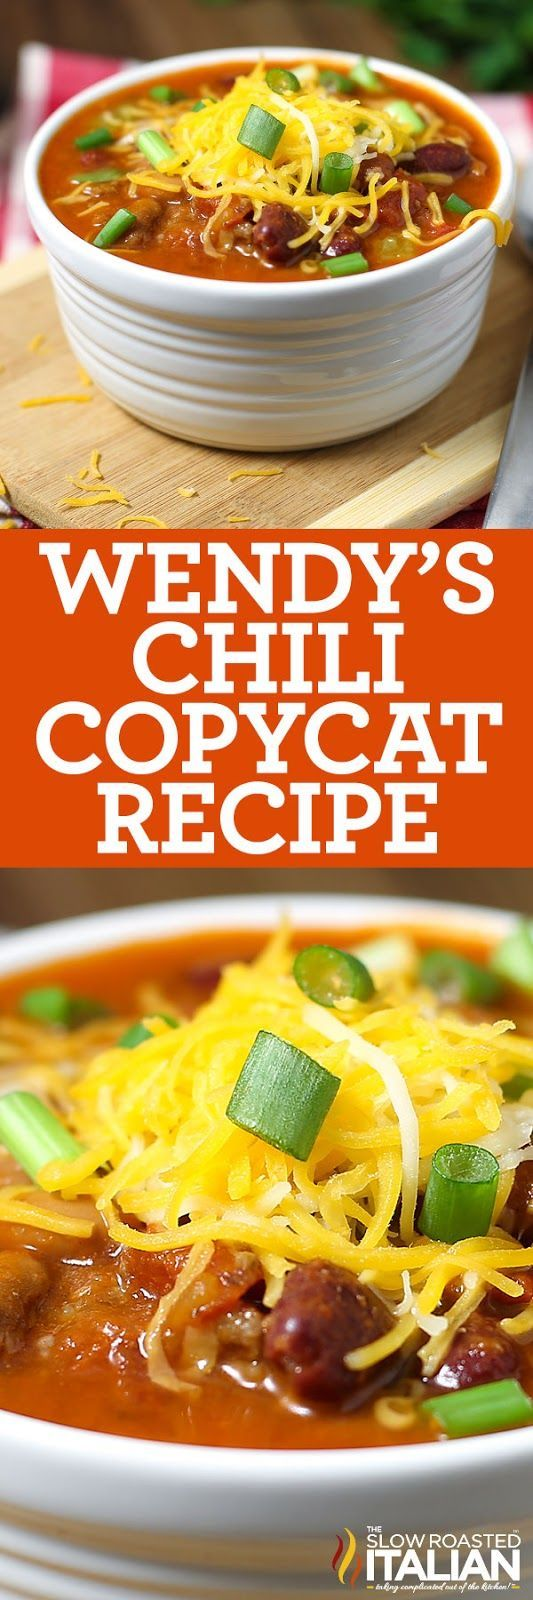 This recipe is for the Wendy's chili lover in you. Say what you will, Wendy's really makes some spectacular beef chili. It's one of their signature sides, so if you have ever eaten at Wendy's you have to know about the chili. It's so thick and rich you can stand a spoon straight up in it.